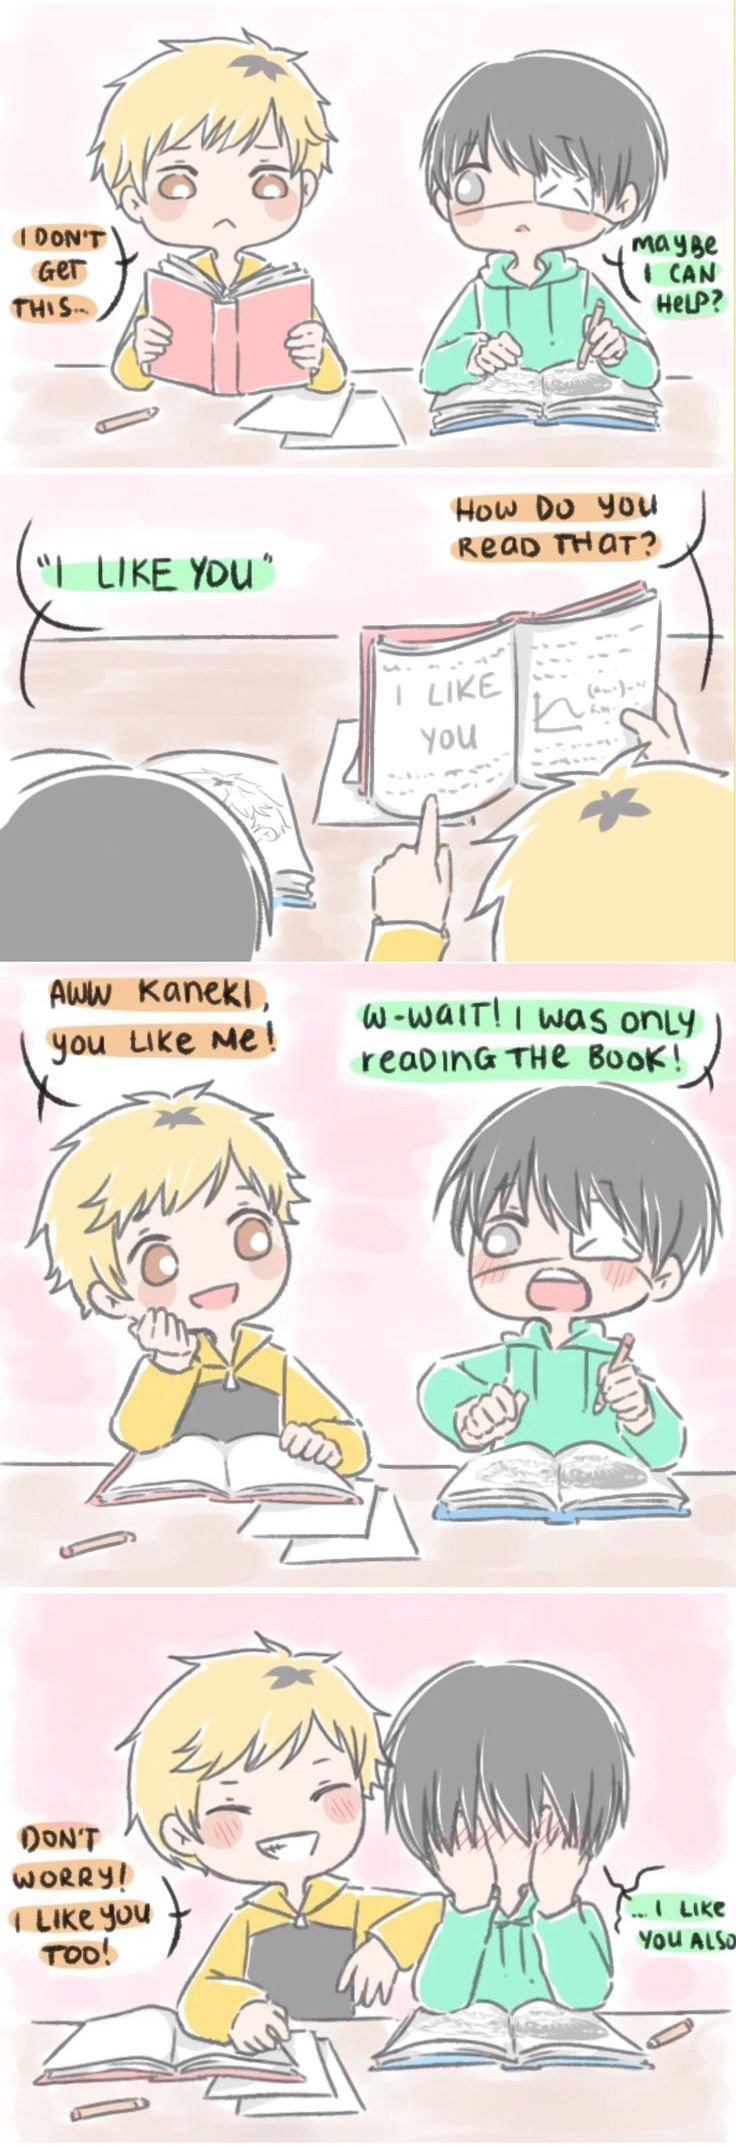 Tokyo Ghoul | Kaneki & Hide - I can totally imagine this is how Hide tricked Kaneki into being friends with him. :3